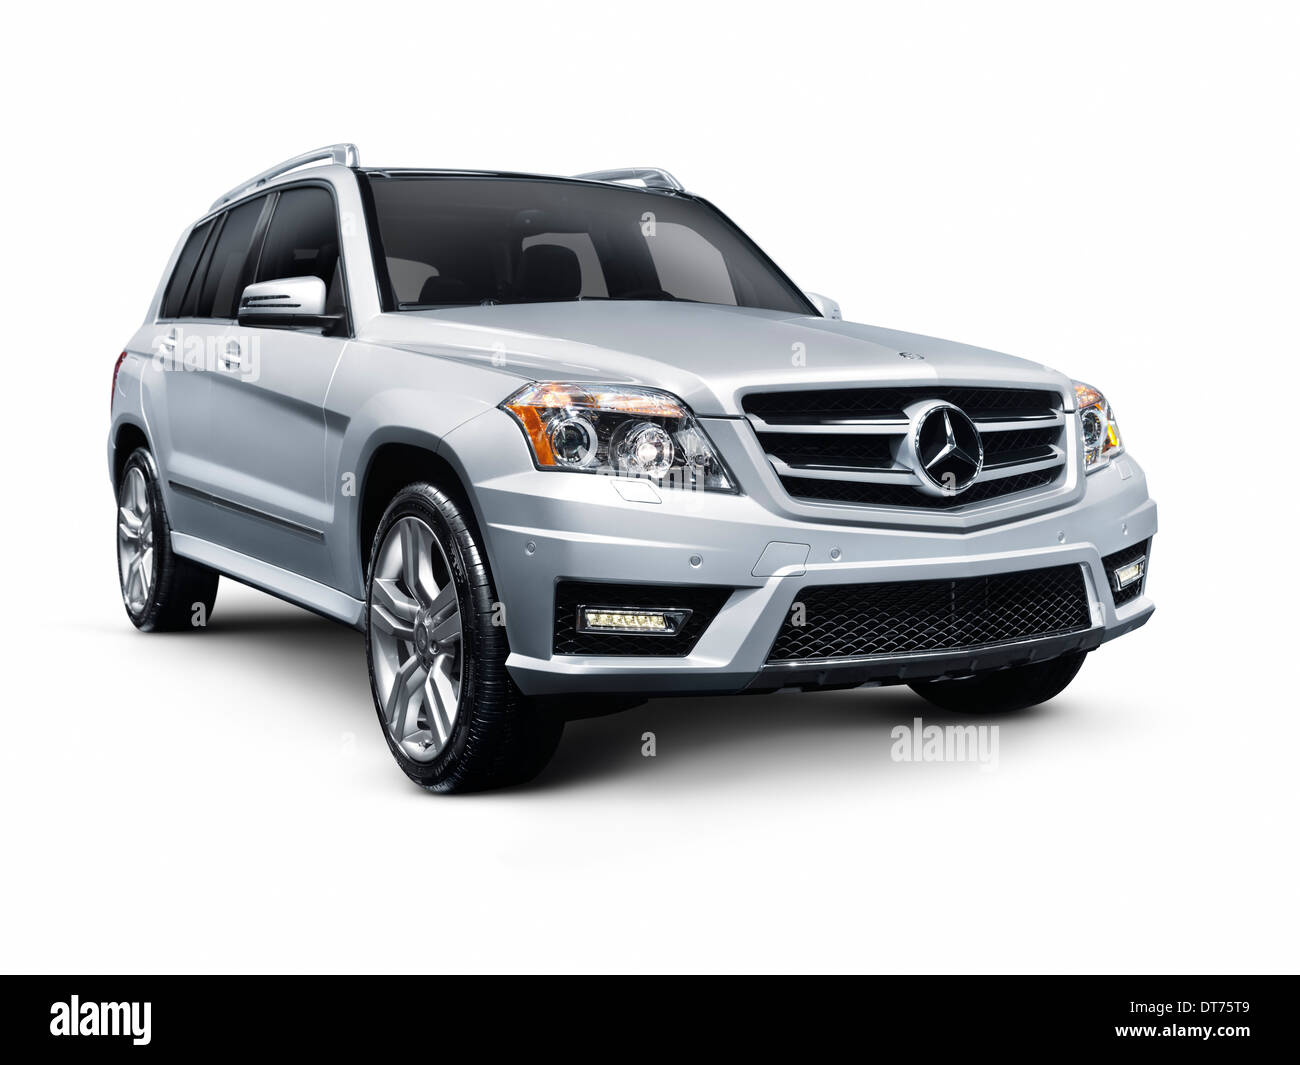 silver 2012 mercedes benz glk350 4matic suv isolated car on white background with clipping path - Mercedes Benz Suv 2012